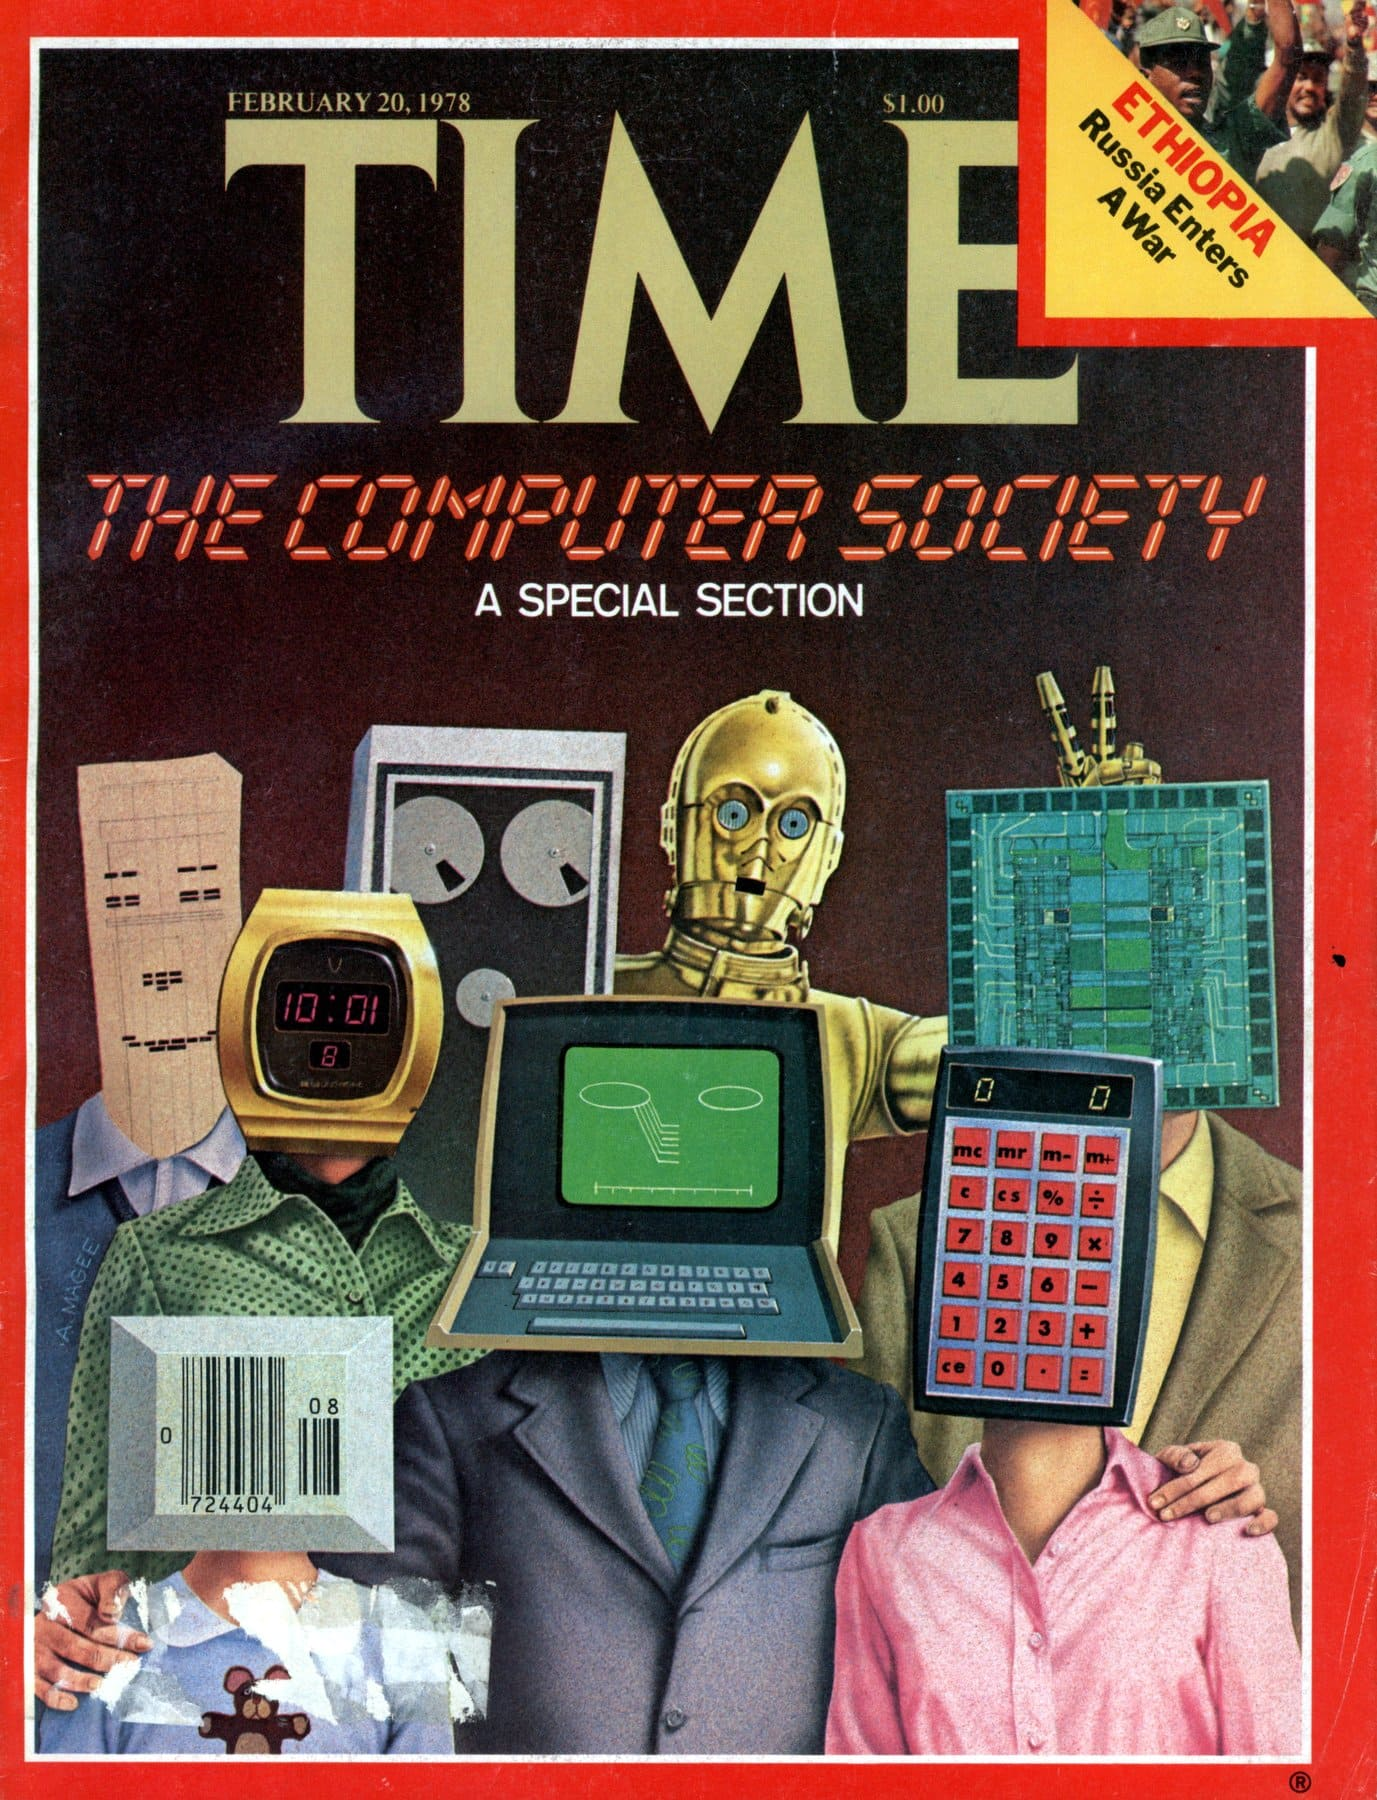 Time magazine - The computer society (1978)